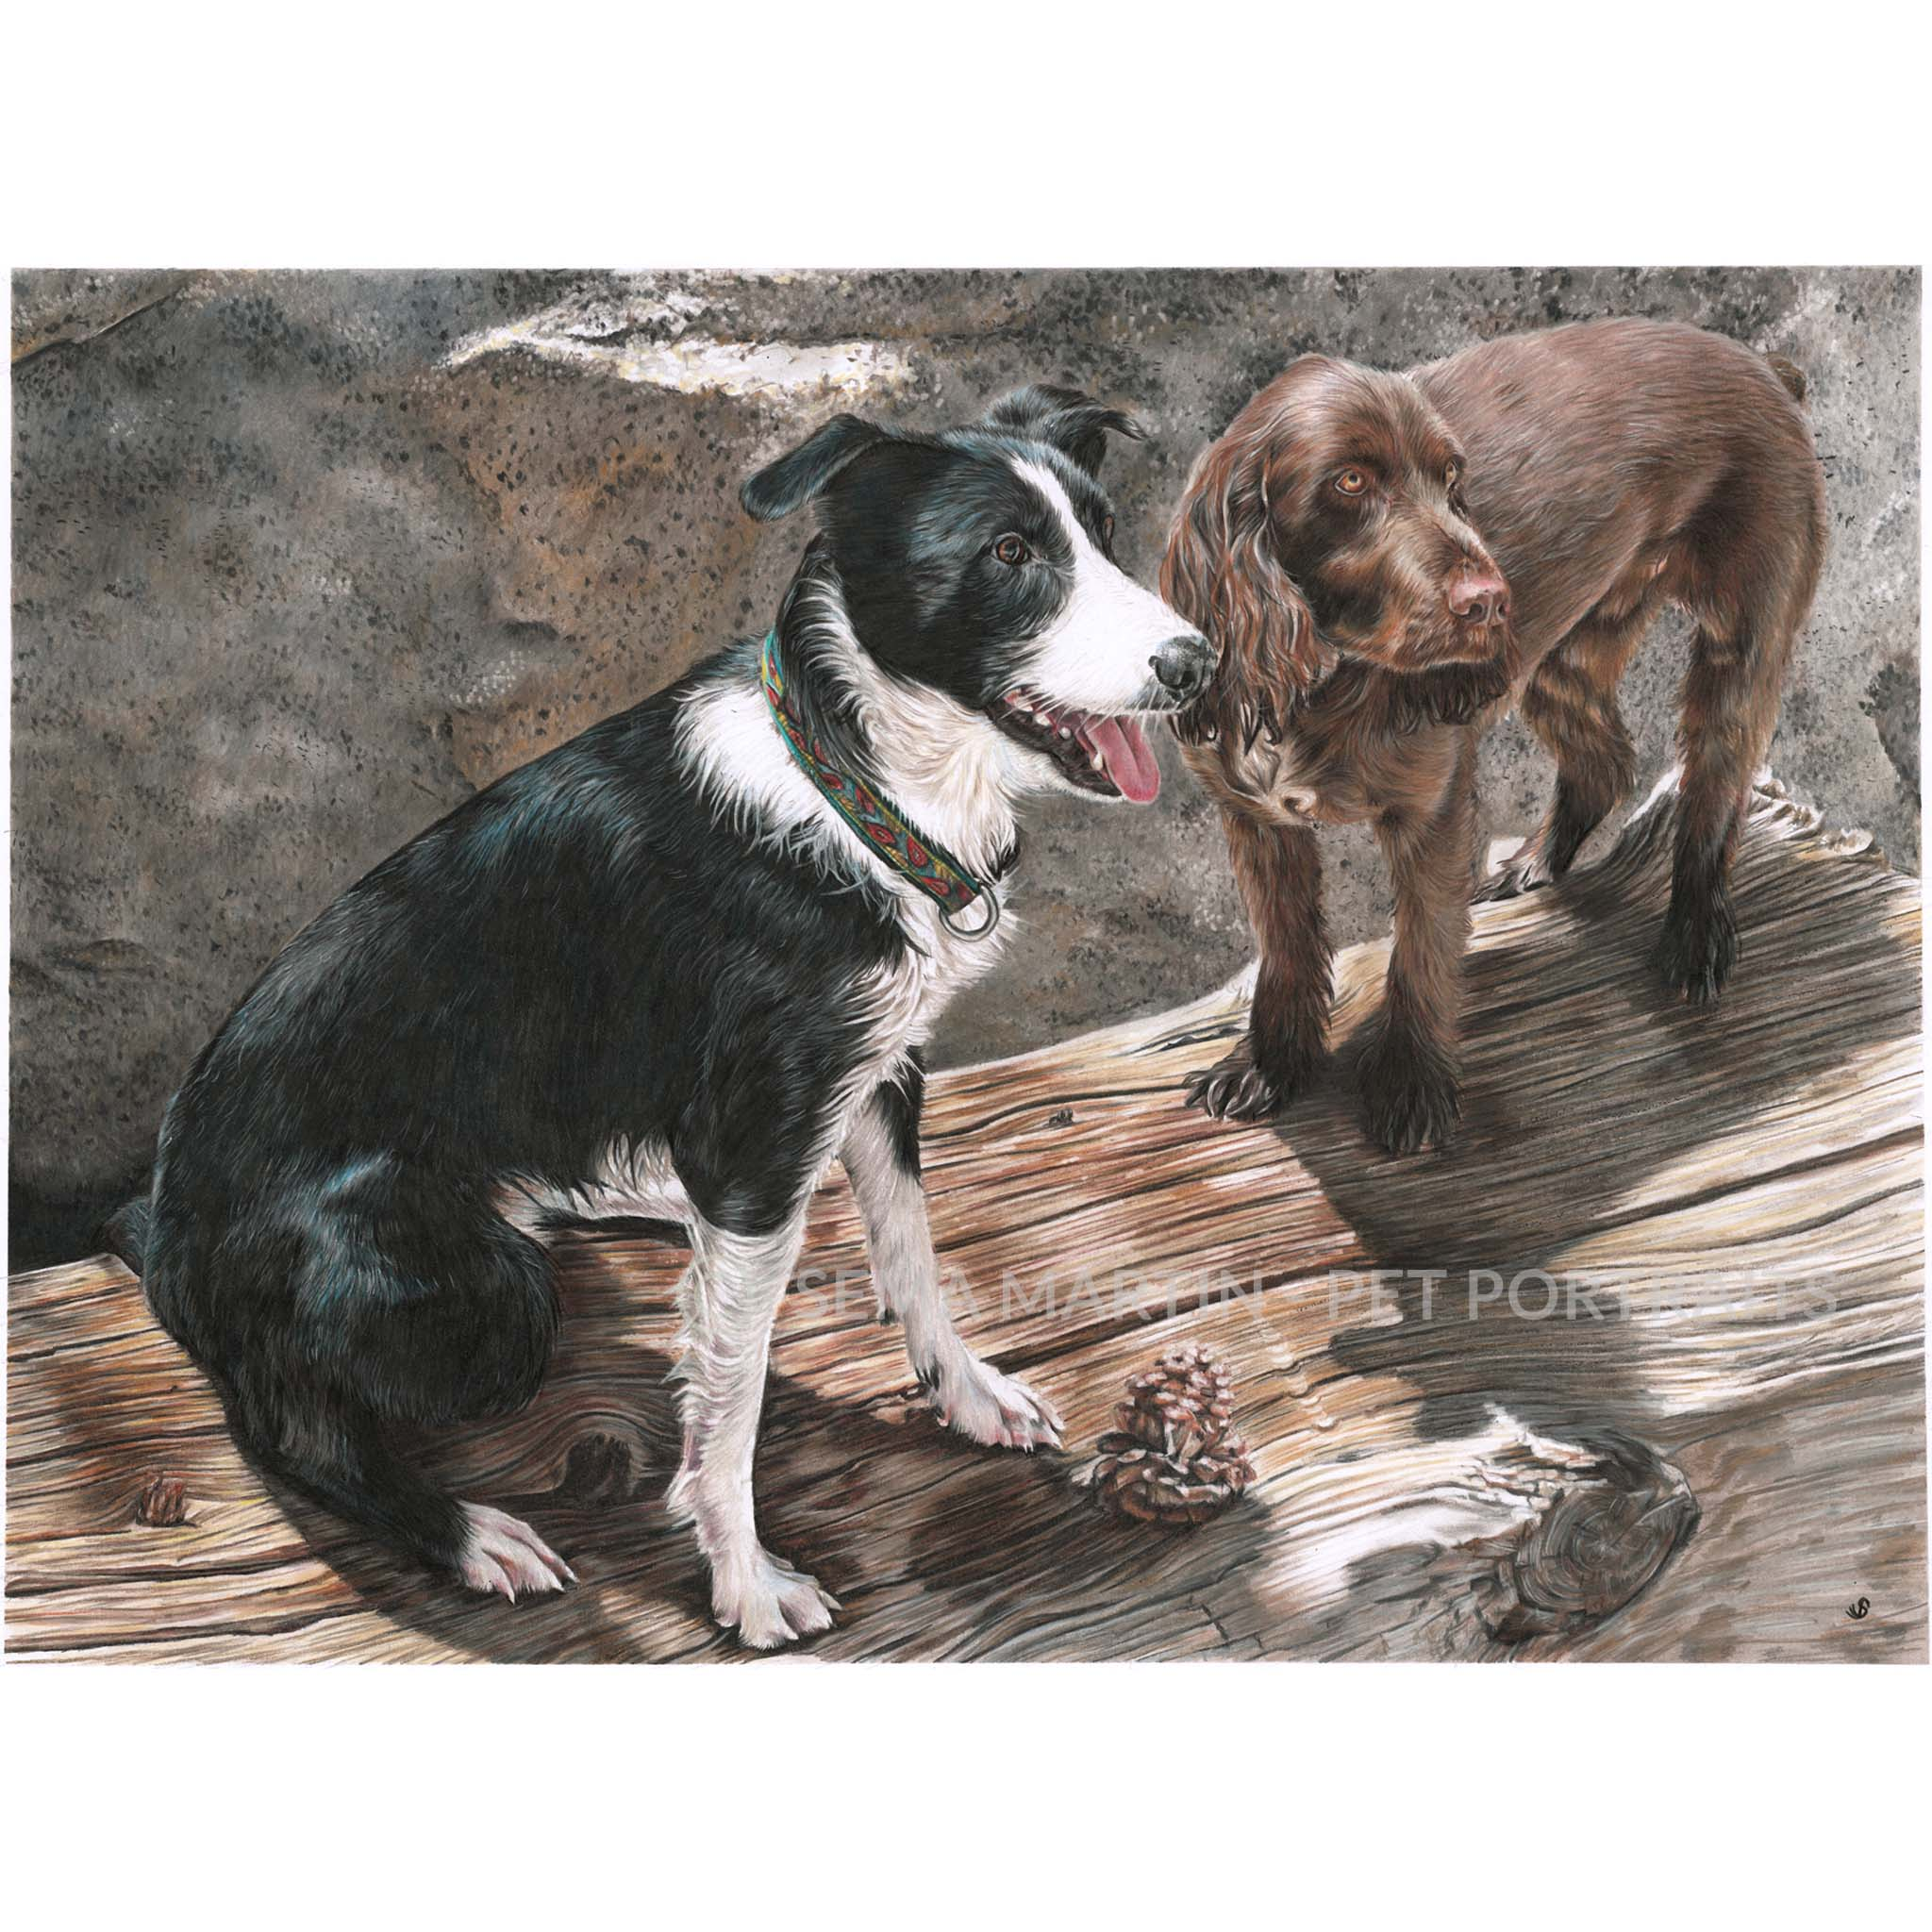 'Miki & Race' - USA, 16.5 x 23.4 inches, 2019, Color Pencil Portrait of a Border Collie and a Spaniel sitting on a log together